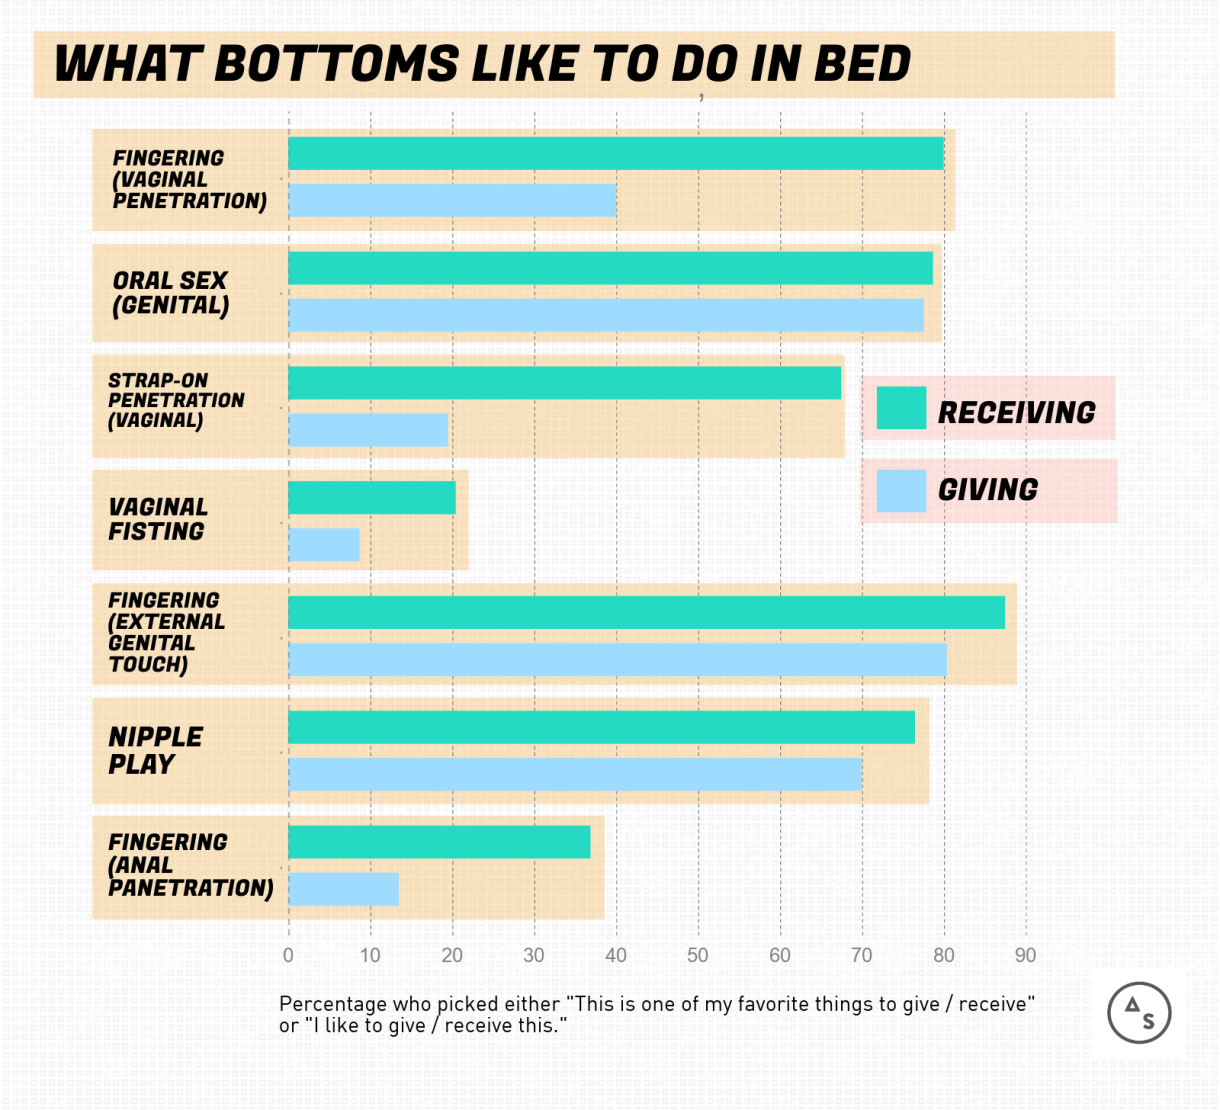 WHAT BOTTOMS LIKE TO DO IN BED: Fingering (Vaginal Penetration): 68.6% like giving, 81% like receiving // Oral Sex (Genital): 77.8% like giving, 78% like receiving // Strap-on Penetration (Vaginal): 20% like giving, 68% like receiving // Vaginal Fisting: 9% like giving, 21% like receiving // Fingering (External Genital Touch): 81% like giving, 87.6% like receiving // Nipple Play: 70% like giving, 76.5% like receiving // Anal Penetration: 12.5% like giving, 37% like receiving.